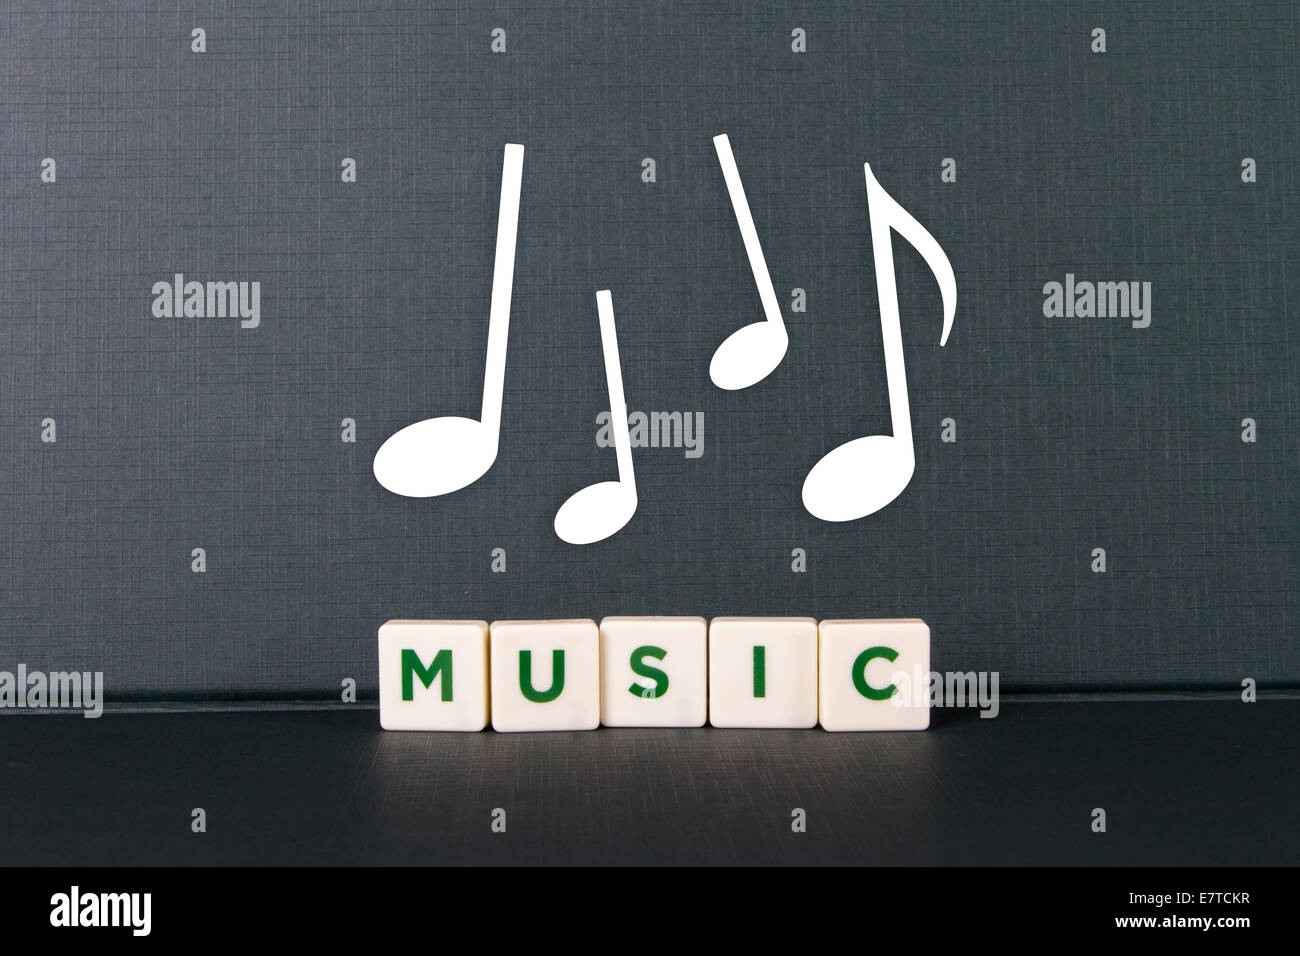 Music Notes Alphabet Stock Photos Music Notes Alphabet Stock